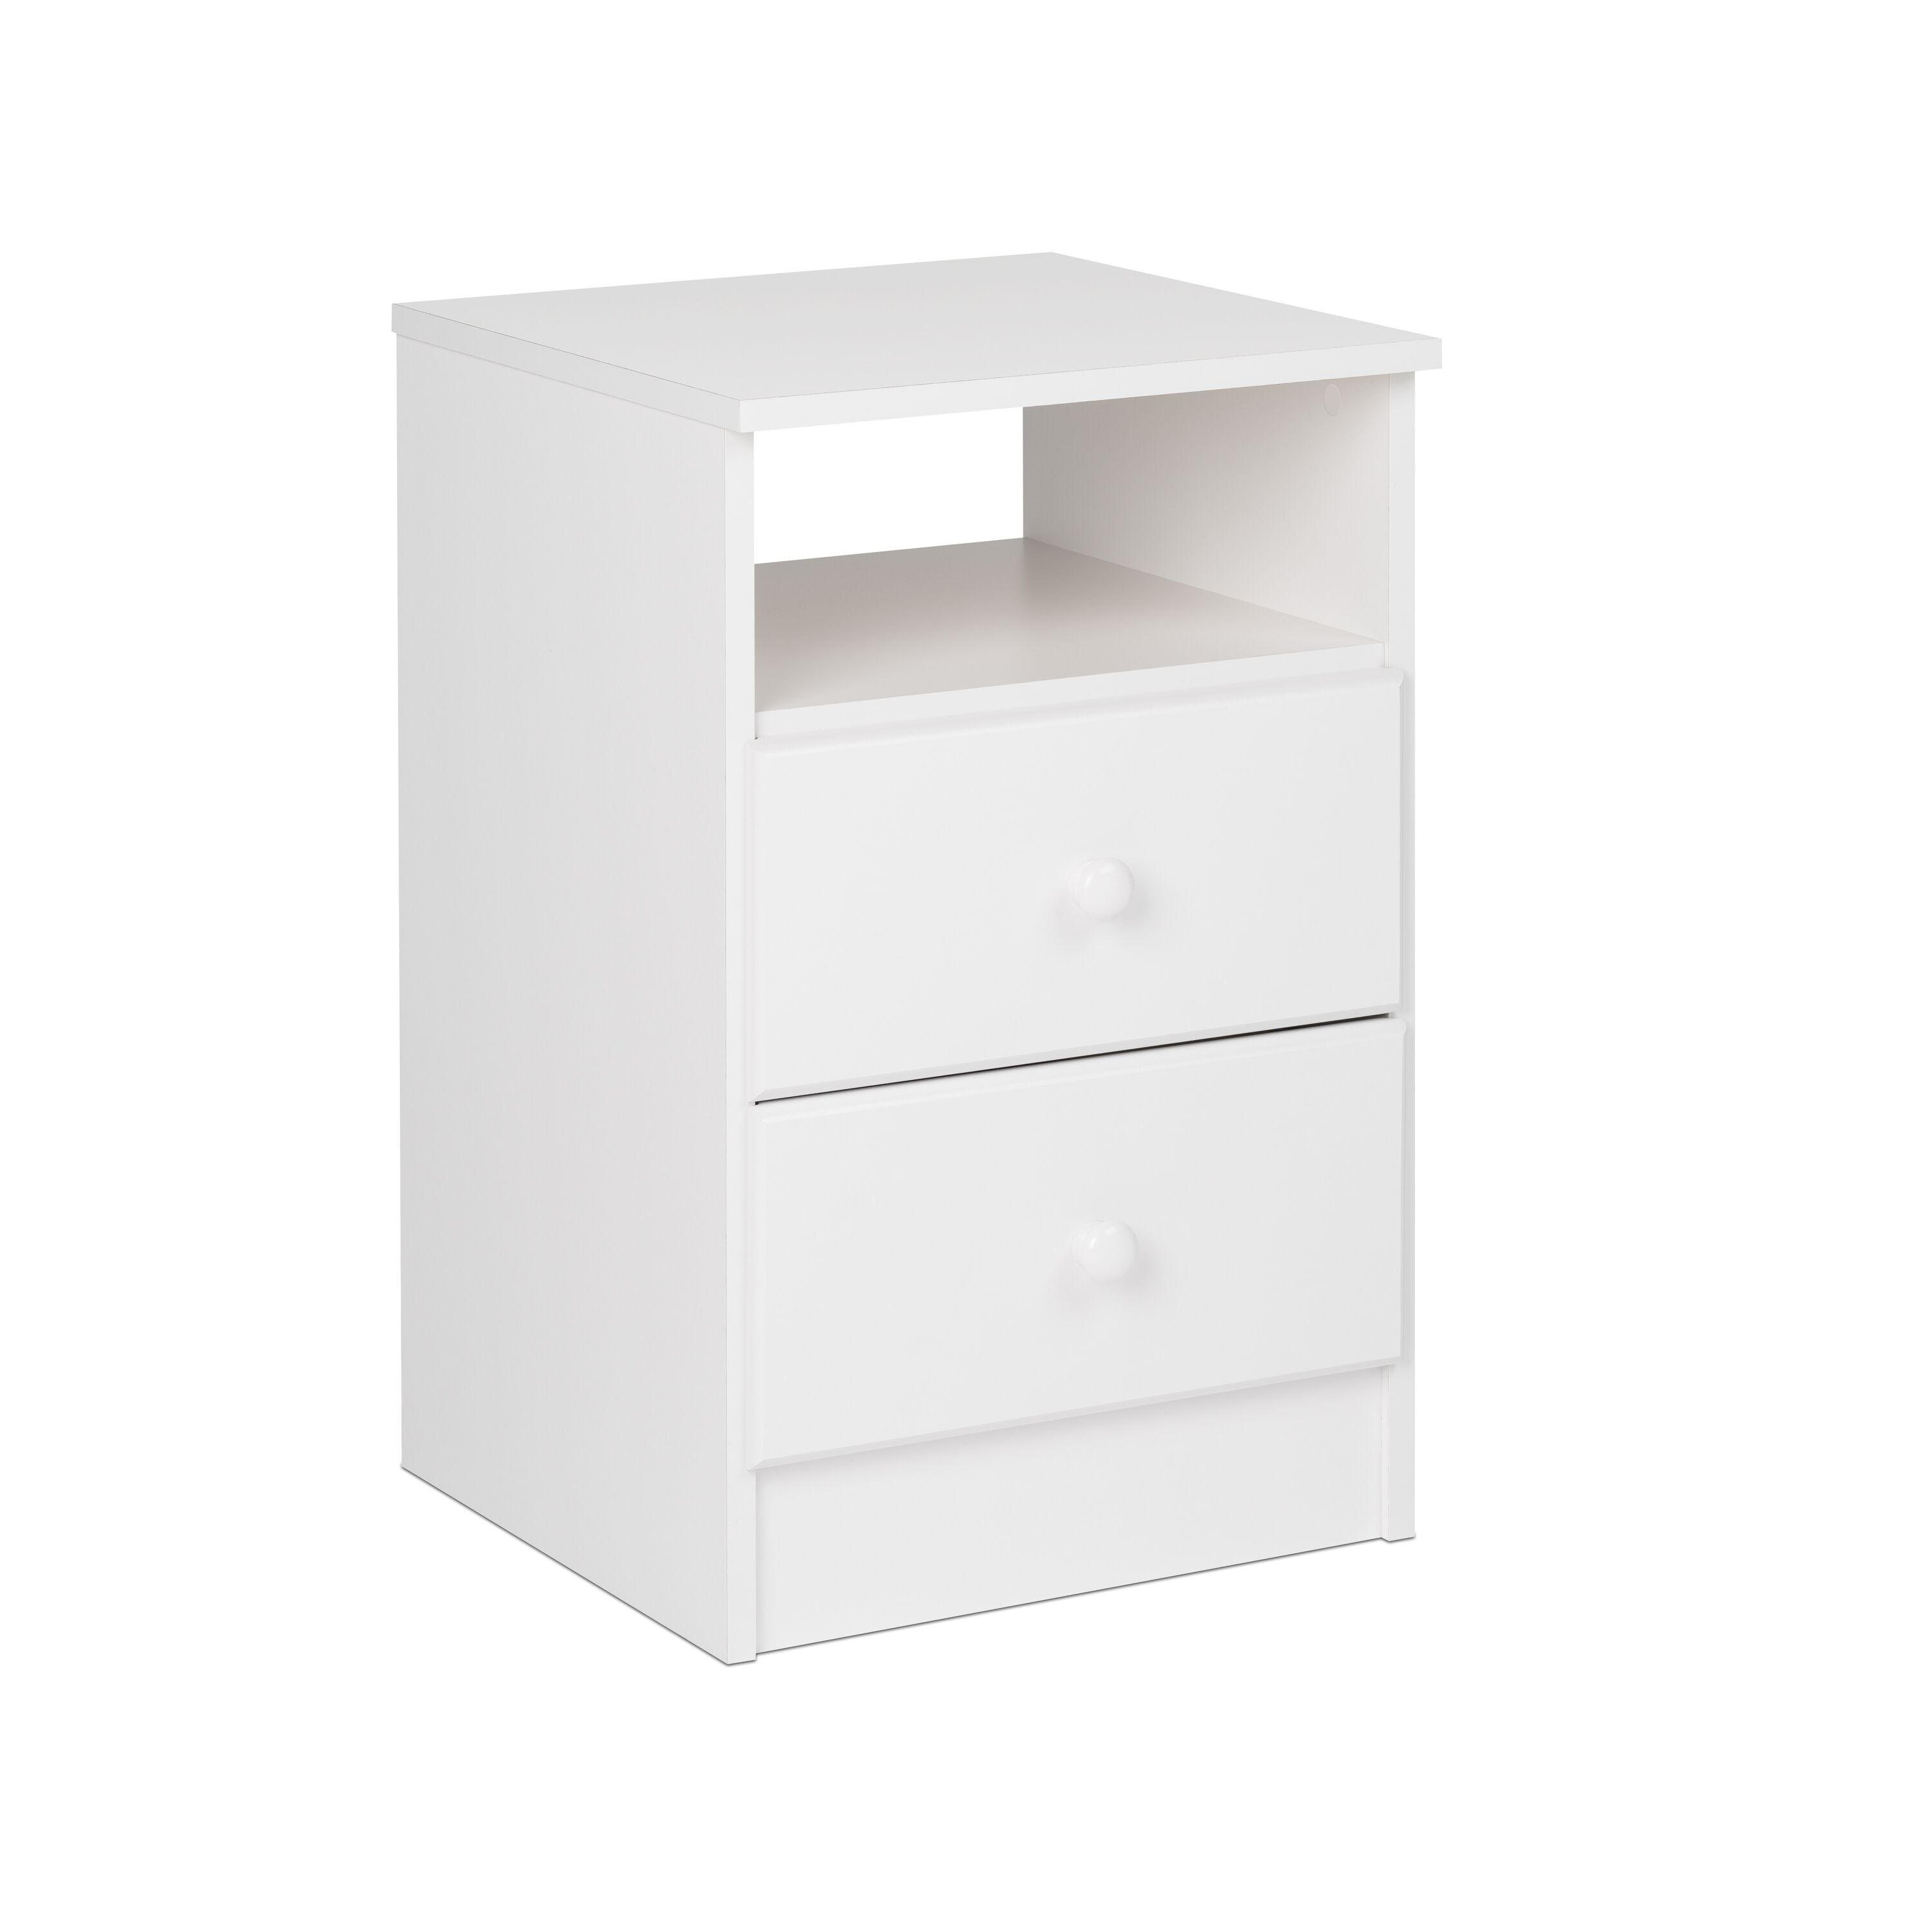 Astrid White 2 Drawer Nightstand W Acrylic Knobs By Prepac